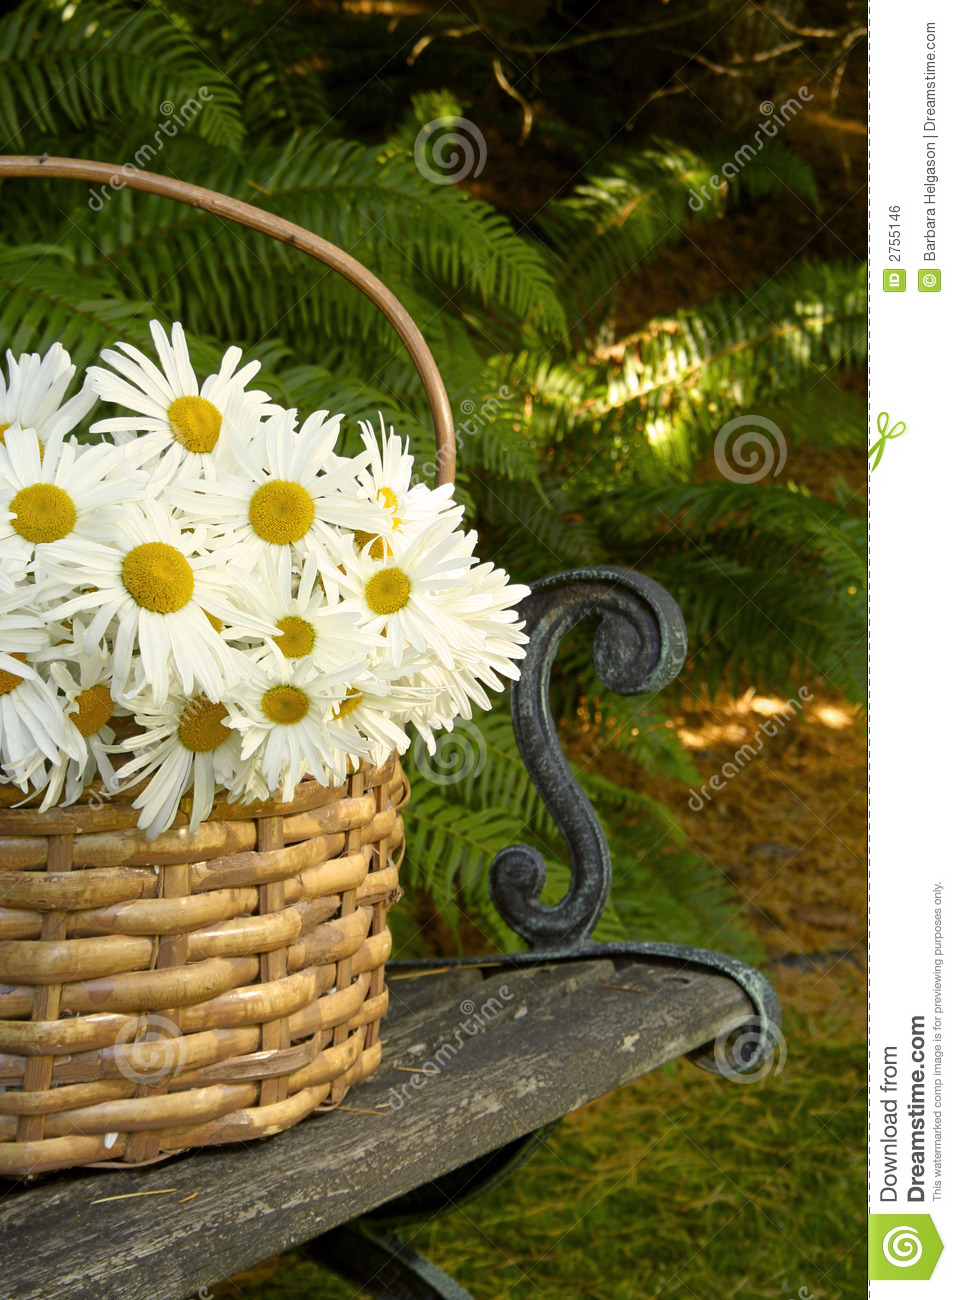 Daisy Basket Royalty Free Stock Image  Image 2755146